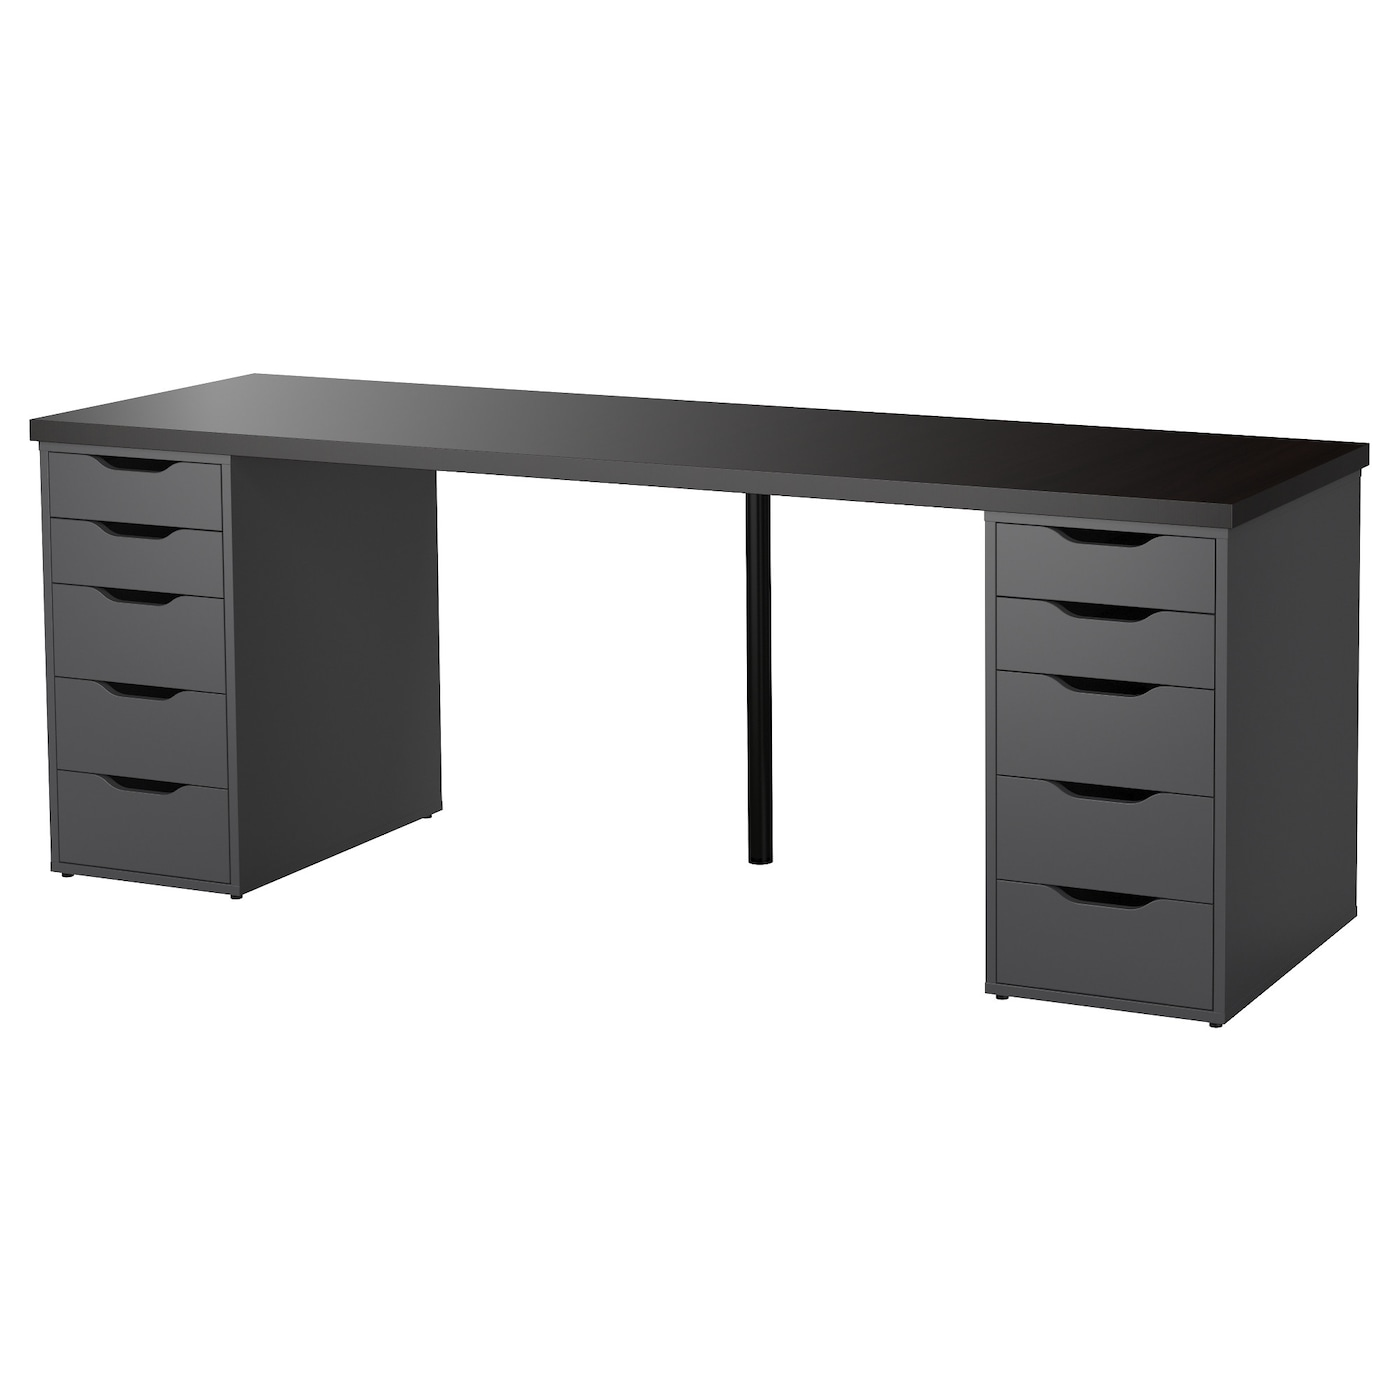 office desks ikea ireland dublin. Black Bedroom Furniture Sets. Home Design Ideas